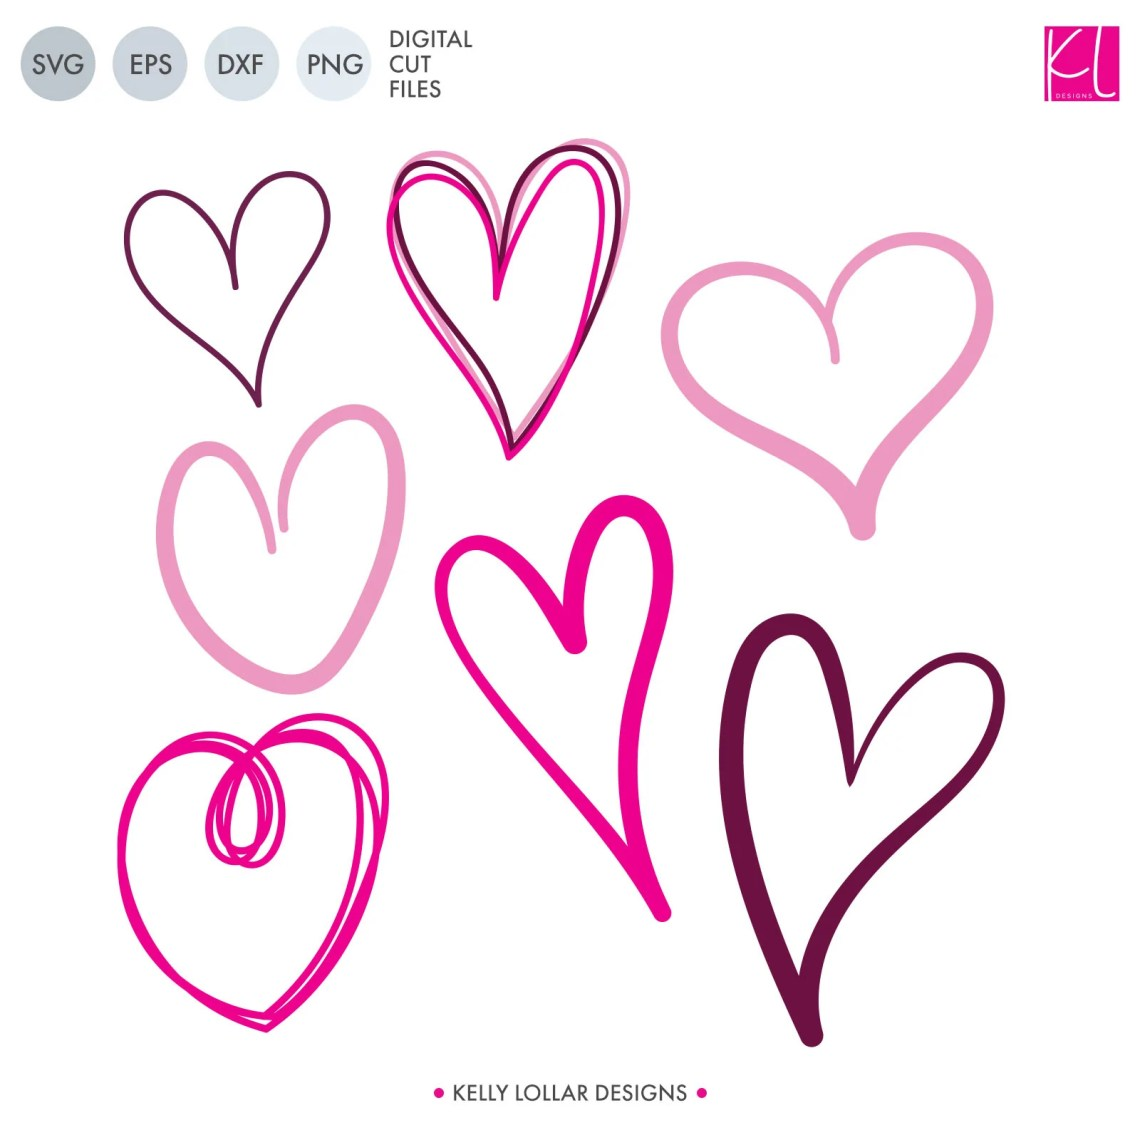 Download Free Doodle Hearts SVG Cut Files - Kelly Lollar Designs